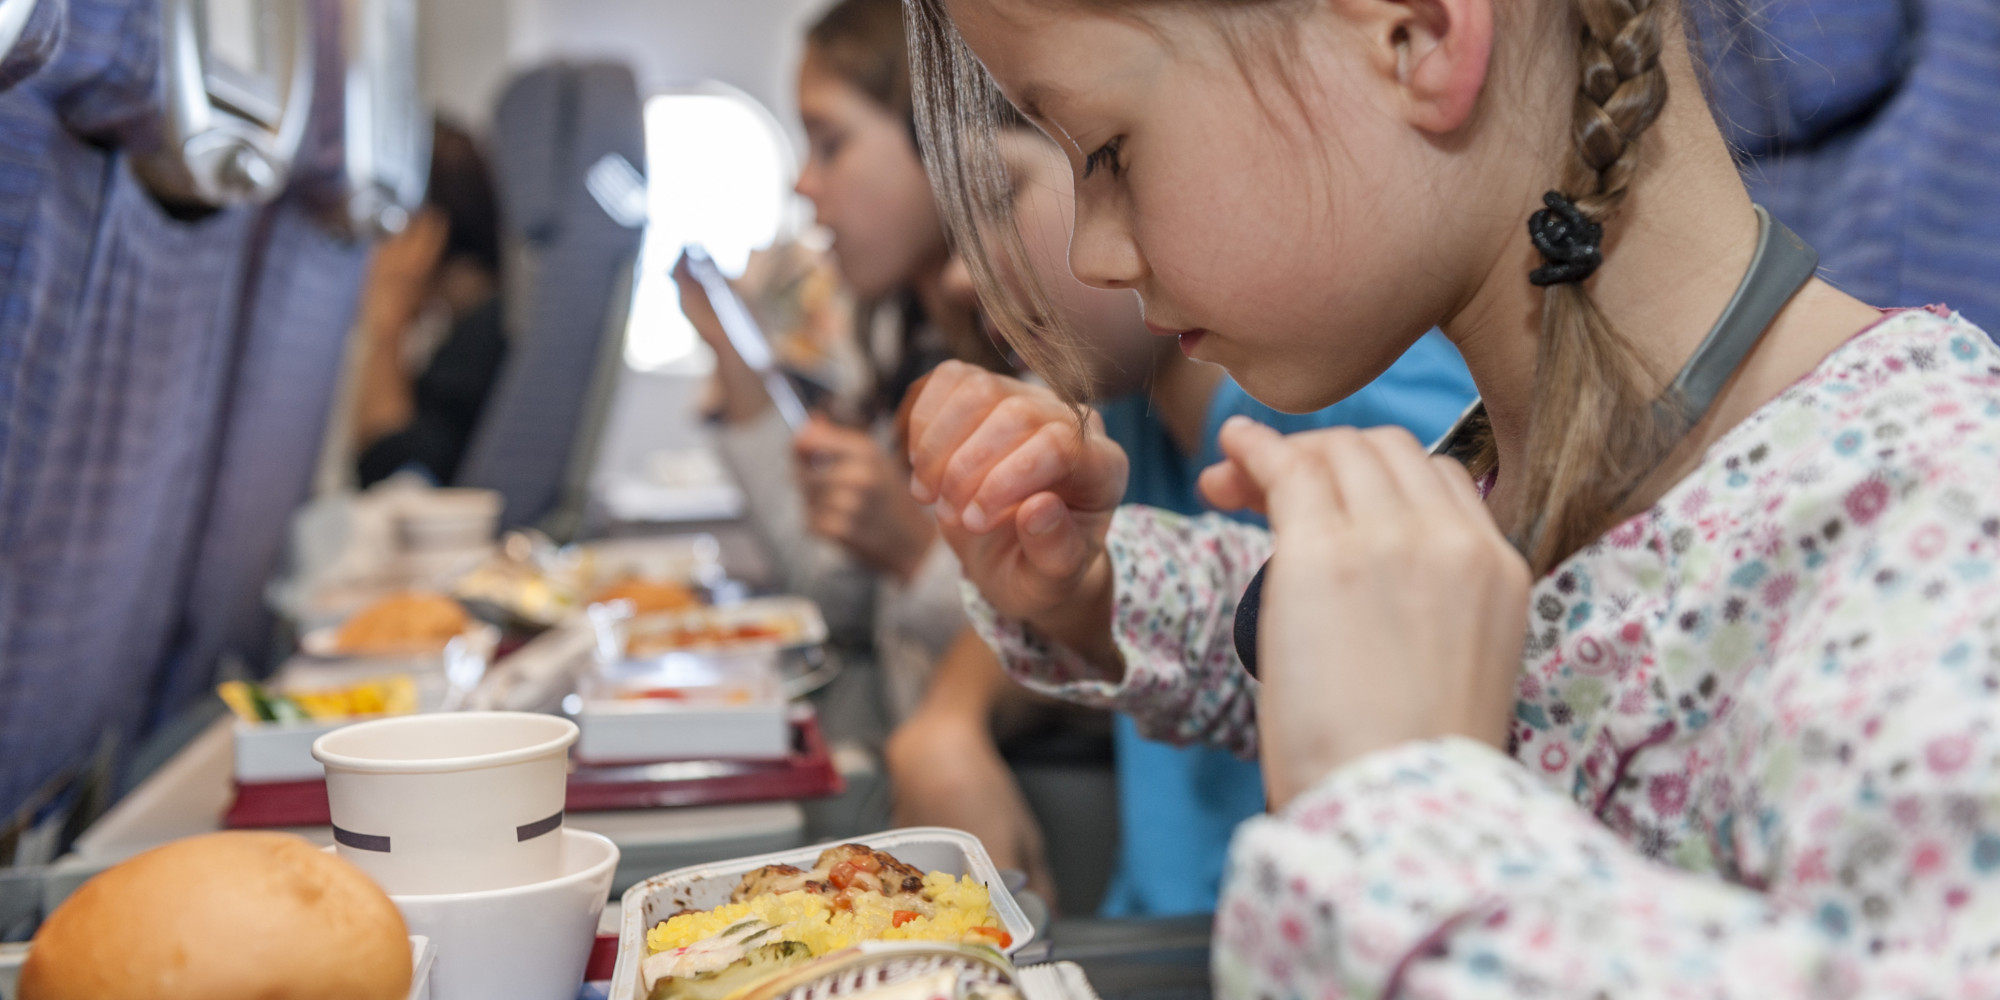 What Kind Of Food Or Drinks For Kids On Plane